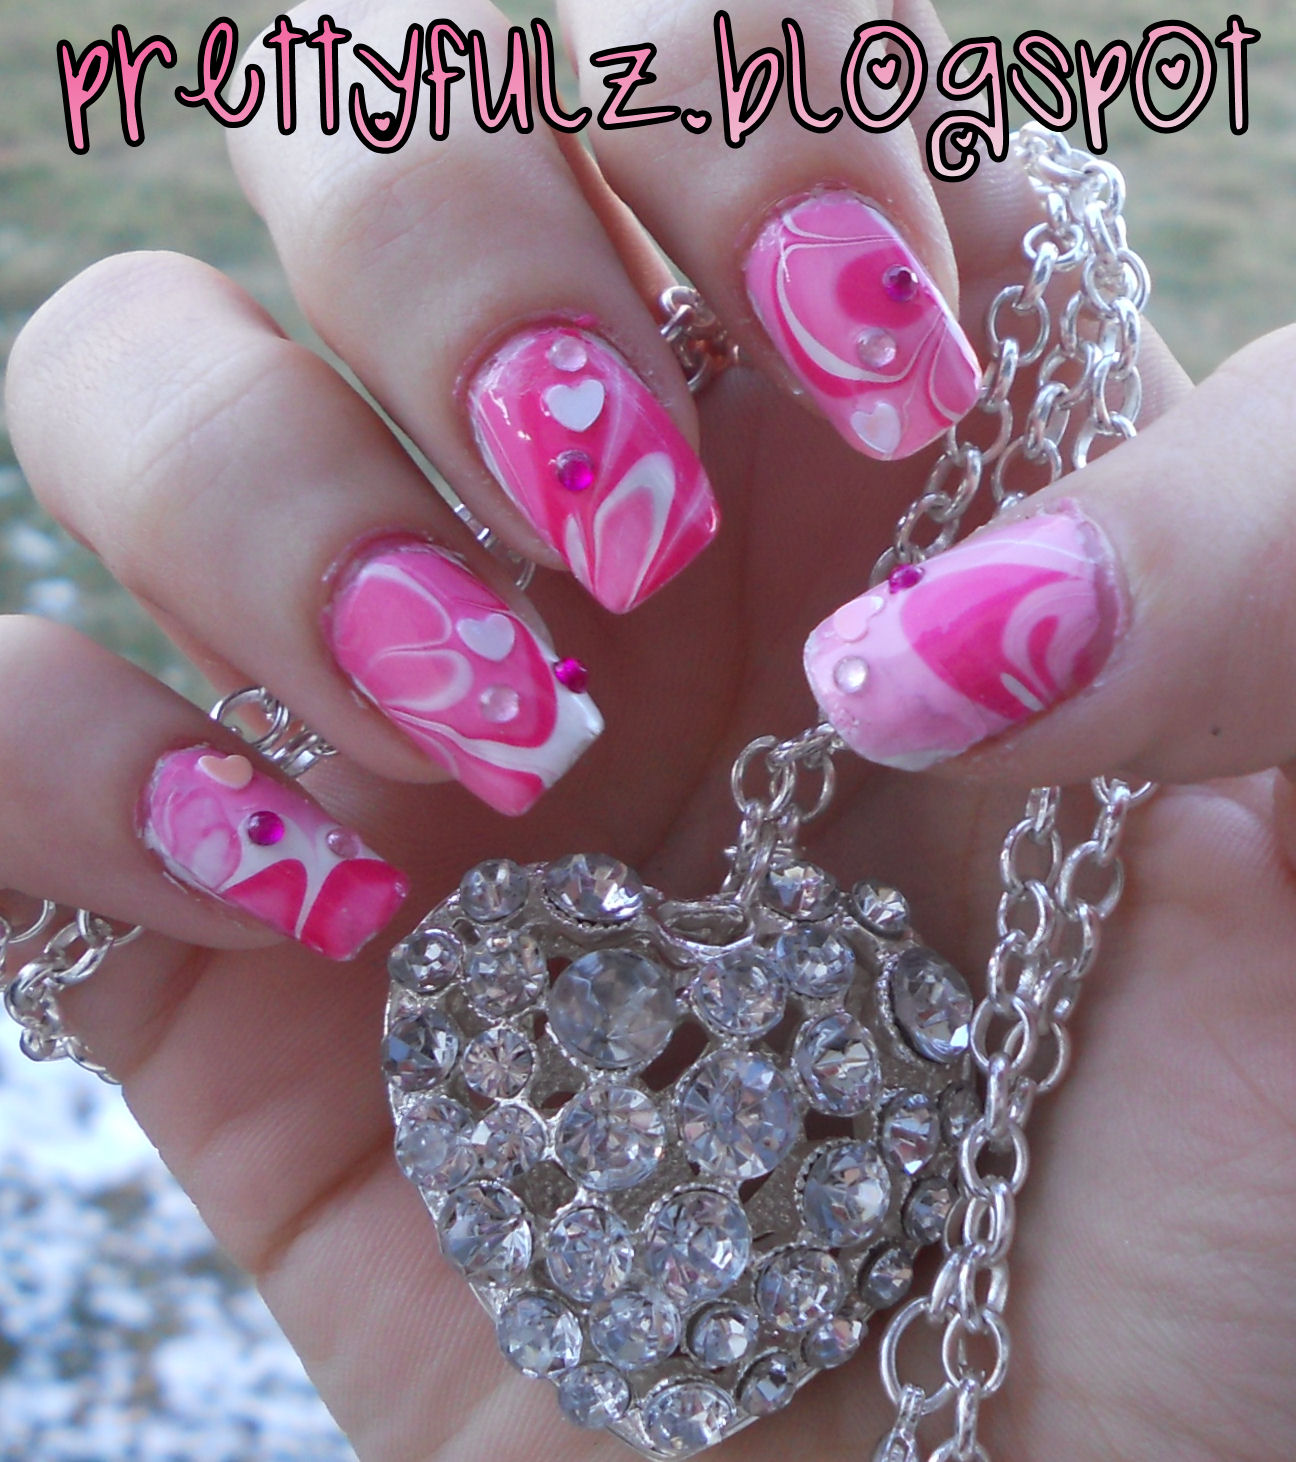 Prettyfulz Fall Nail Art Design 2011: Prettyfulz: VALENTINE'S DAY NAIL ART DESIGN